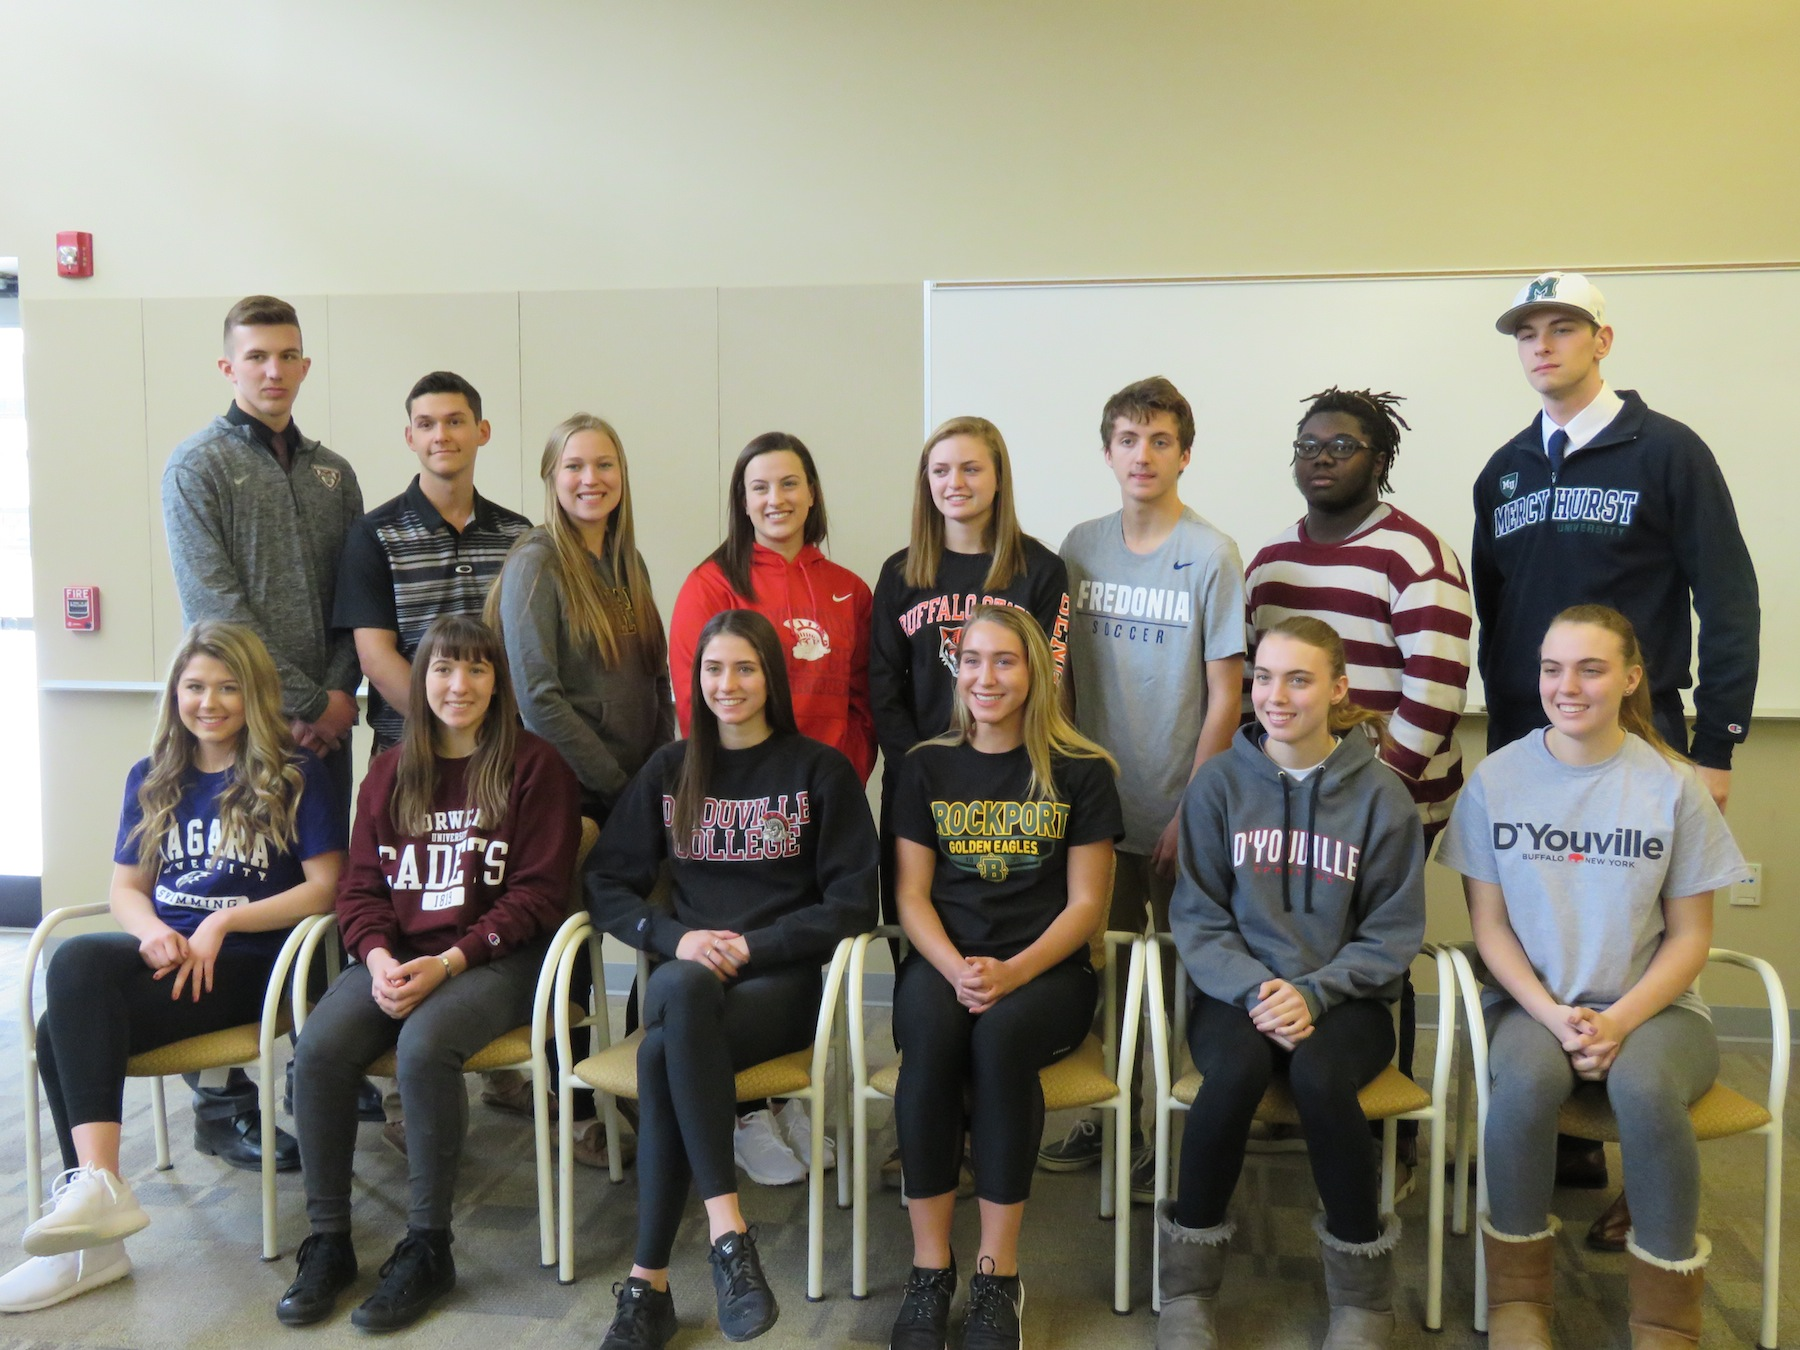 Niagara-Wheatfield student-athletes signed their letters of intent to continue their athletic careers in college. Front row, left to right; Jenna Wagoner, Sarah Carls, Tiffany Cristofanelli, Erin Wegrzyn, Carly Milleville and Mikaela Milleville. Back row, left to right; Zack Belter, Kyle Stenzel, Hallie Dworzanski, Julia Cimino, Sydney Watters, Joseph Gioannini, Josh Brown and James Filippelli. (Photo by David Yarger)